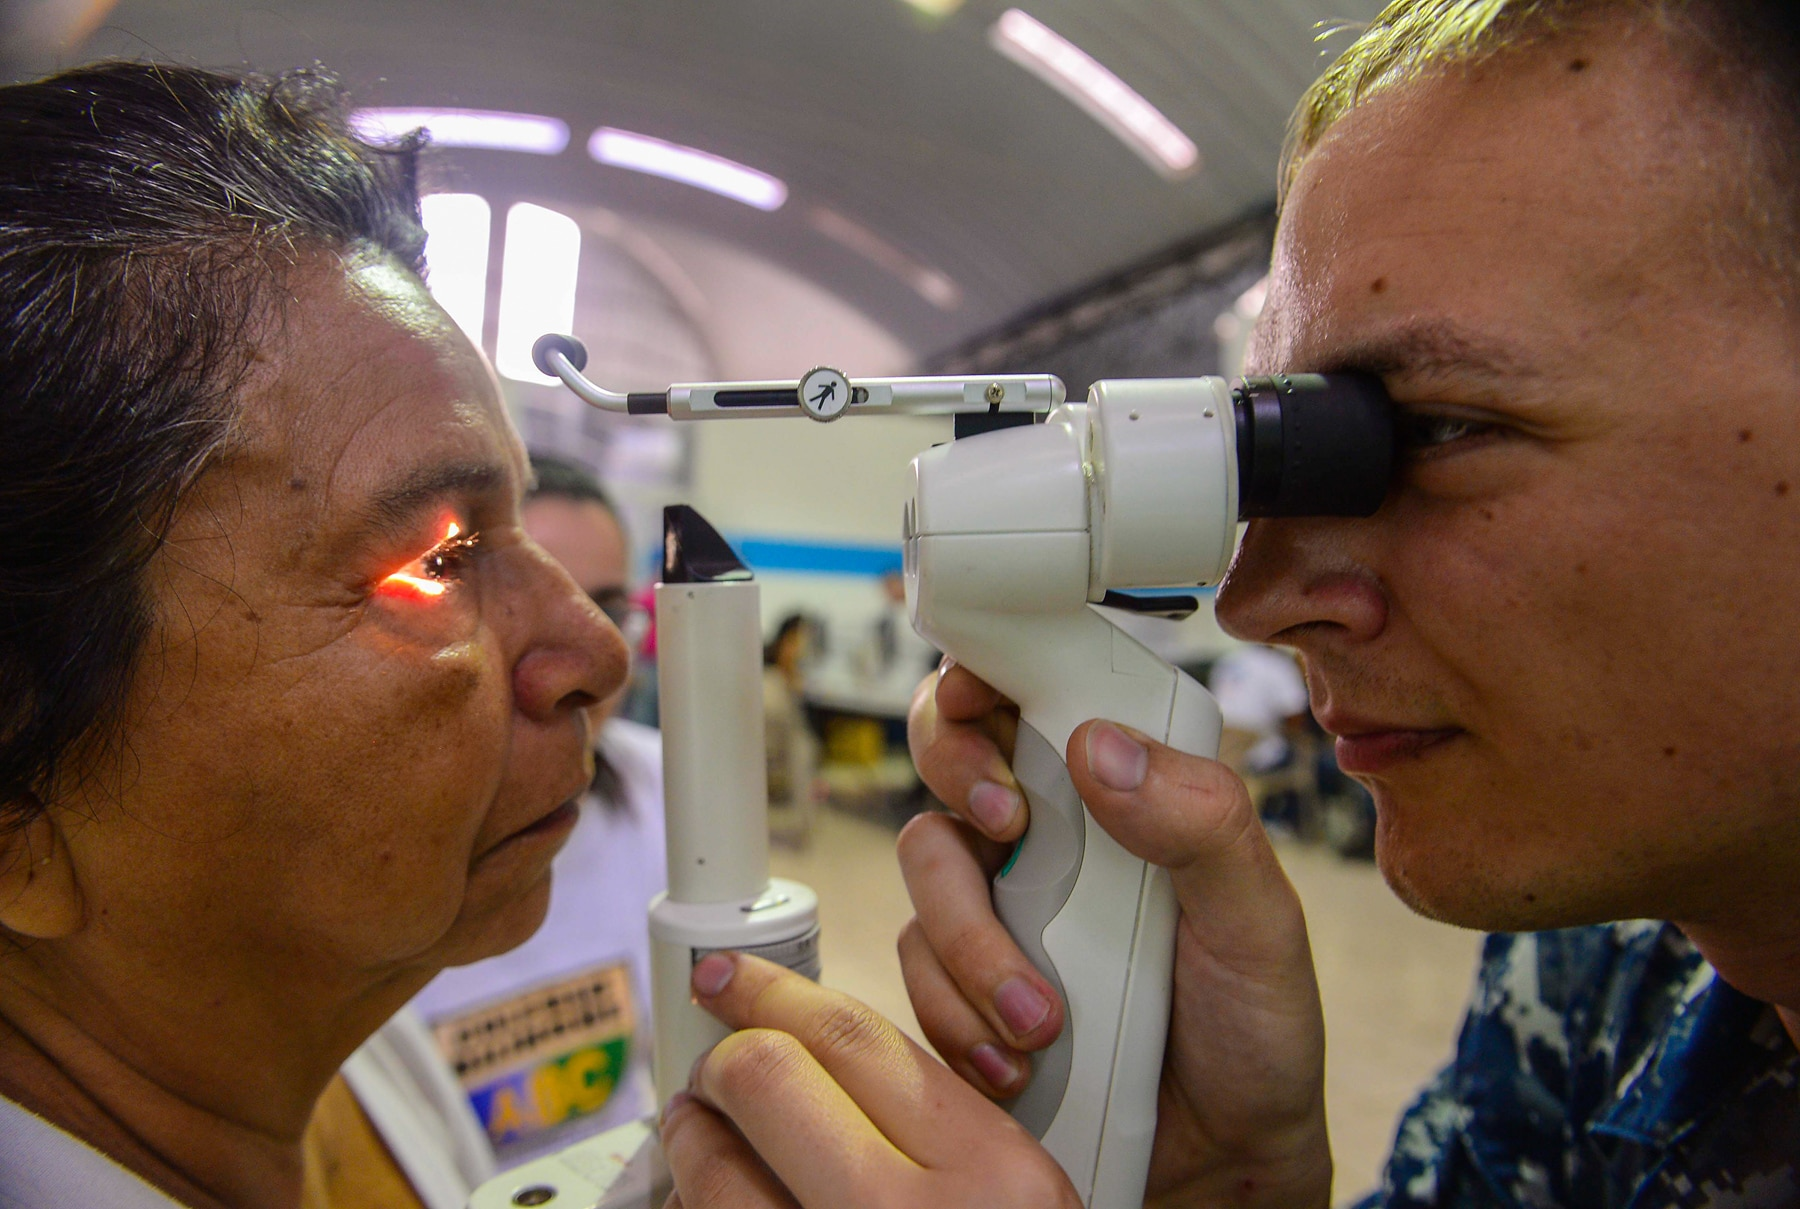 Eye exam being performed by sailor on patient (U.S. Navy/ Brittney Cannady)